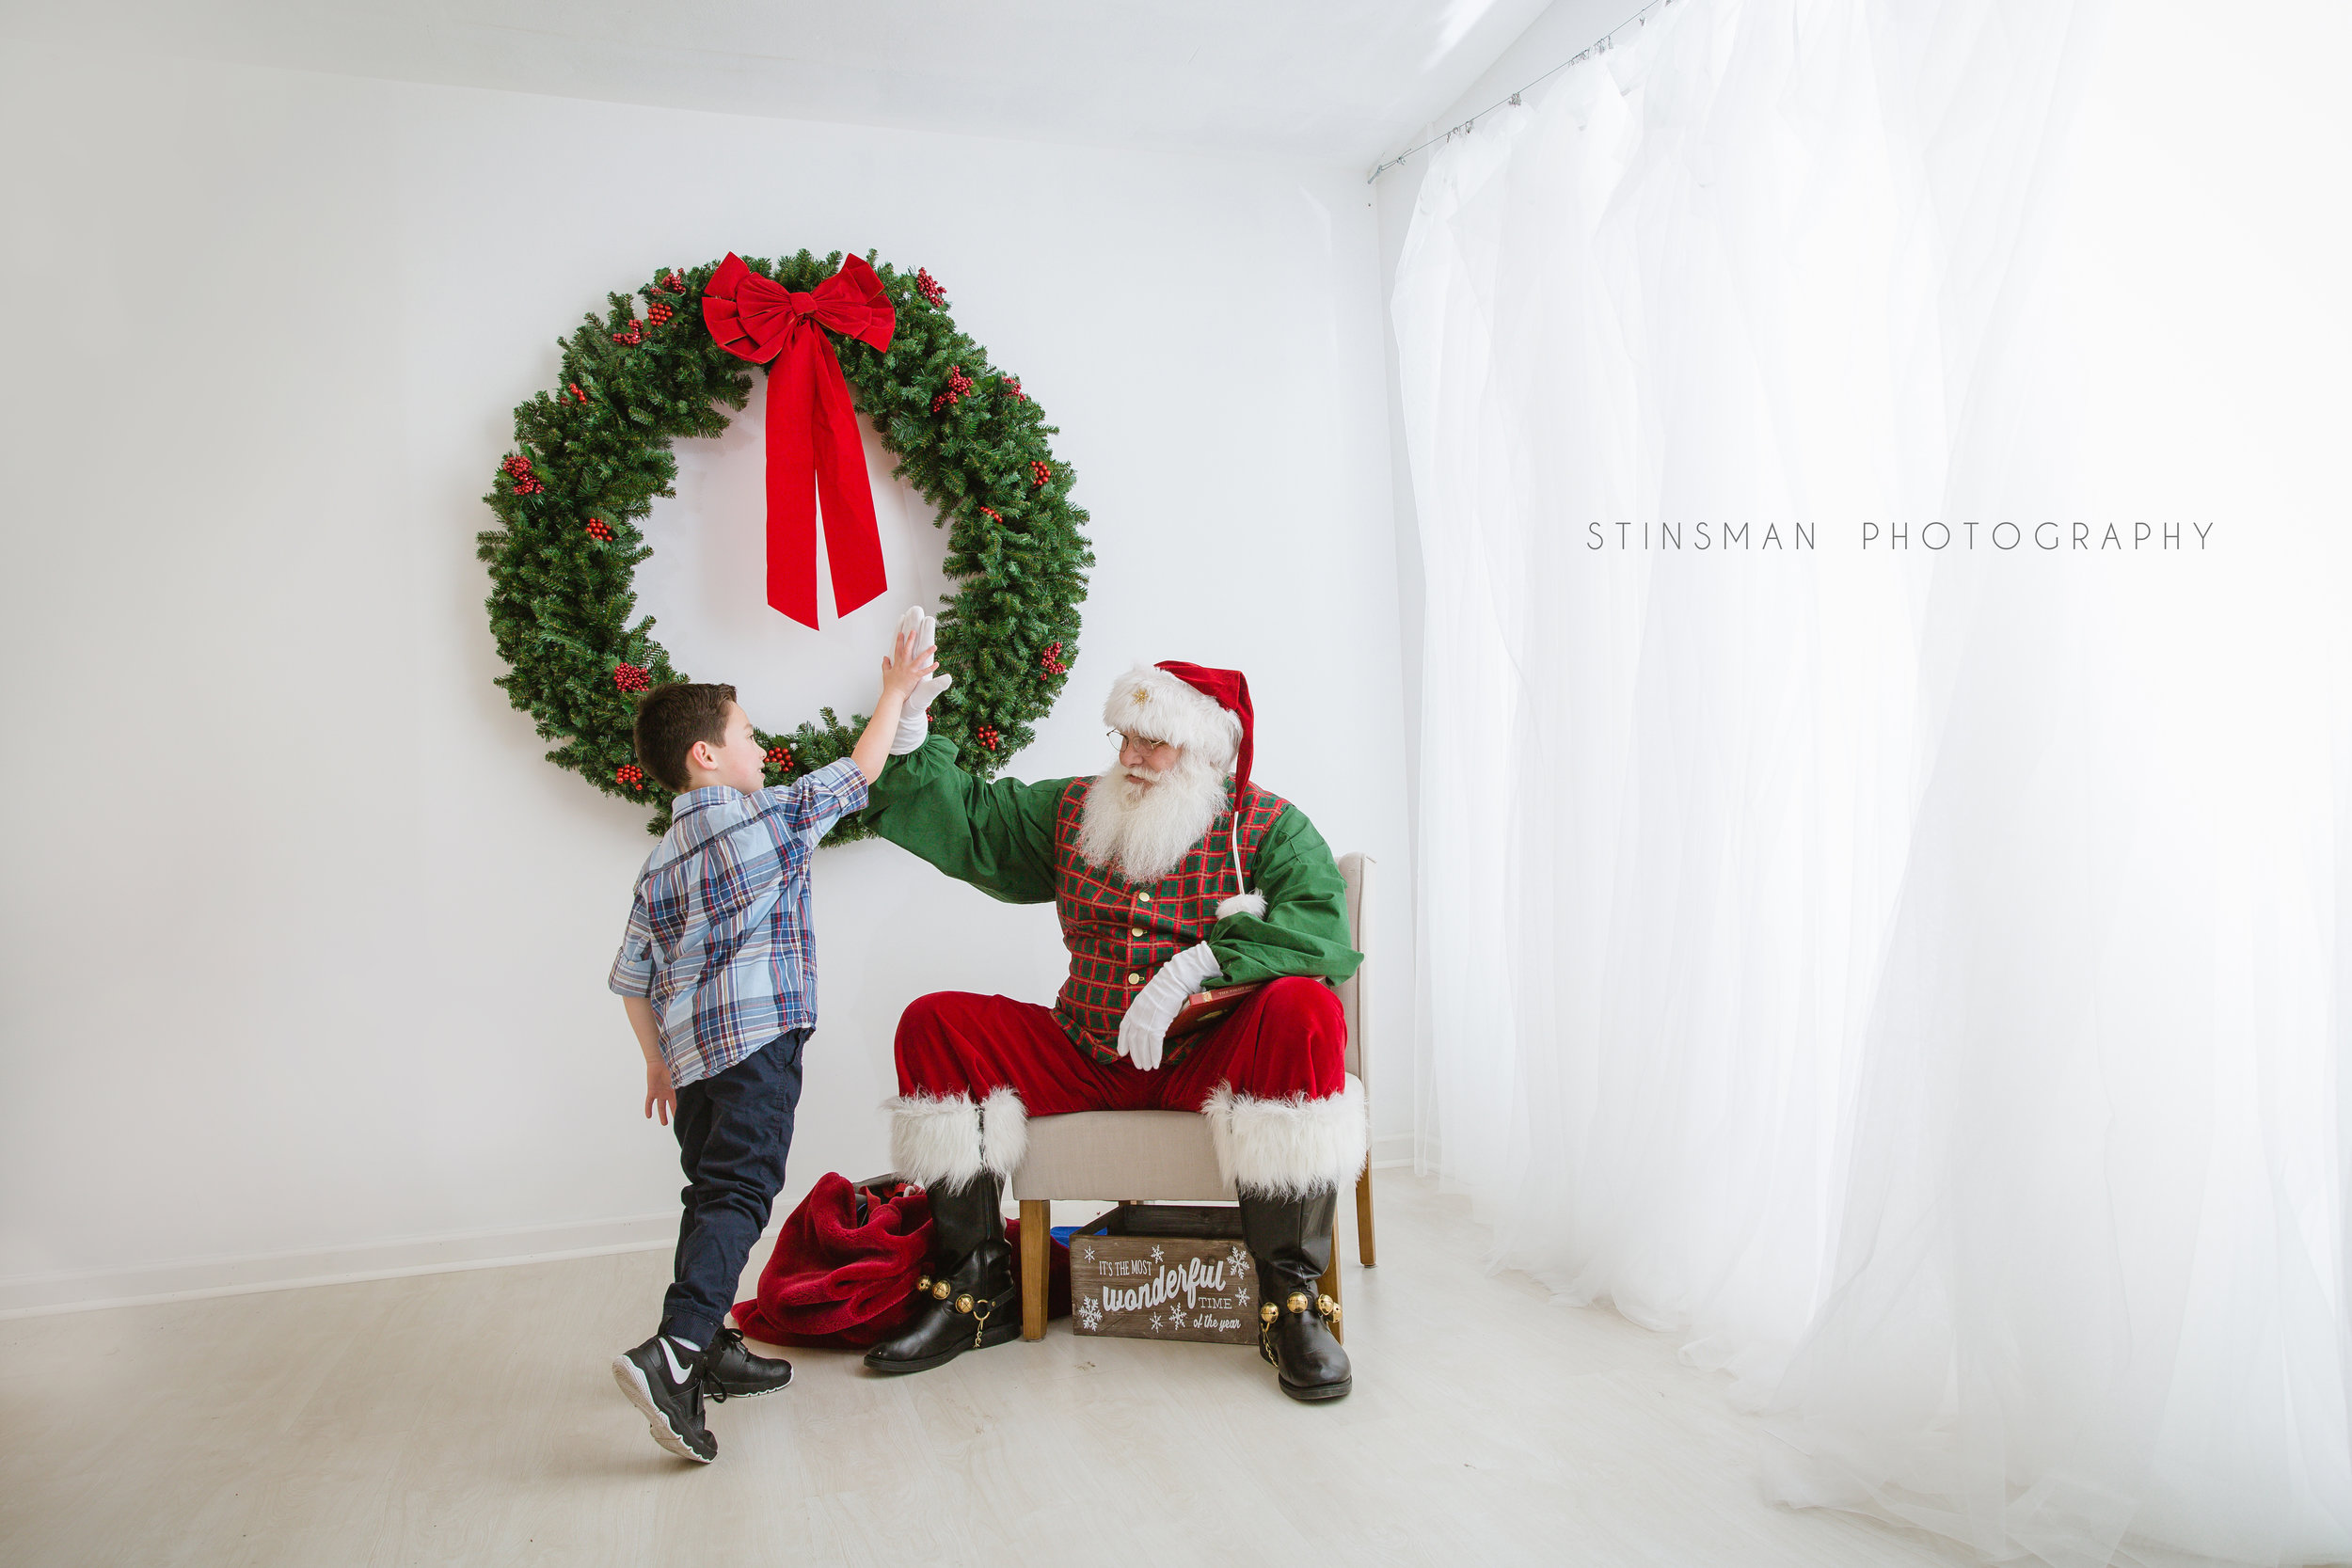 Dancing with Santa at burlington nj photo studio